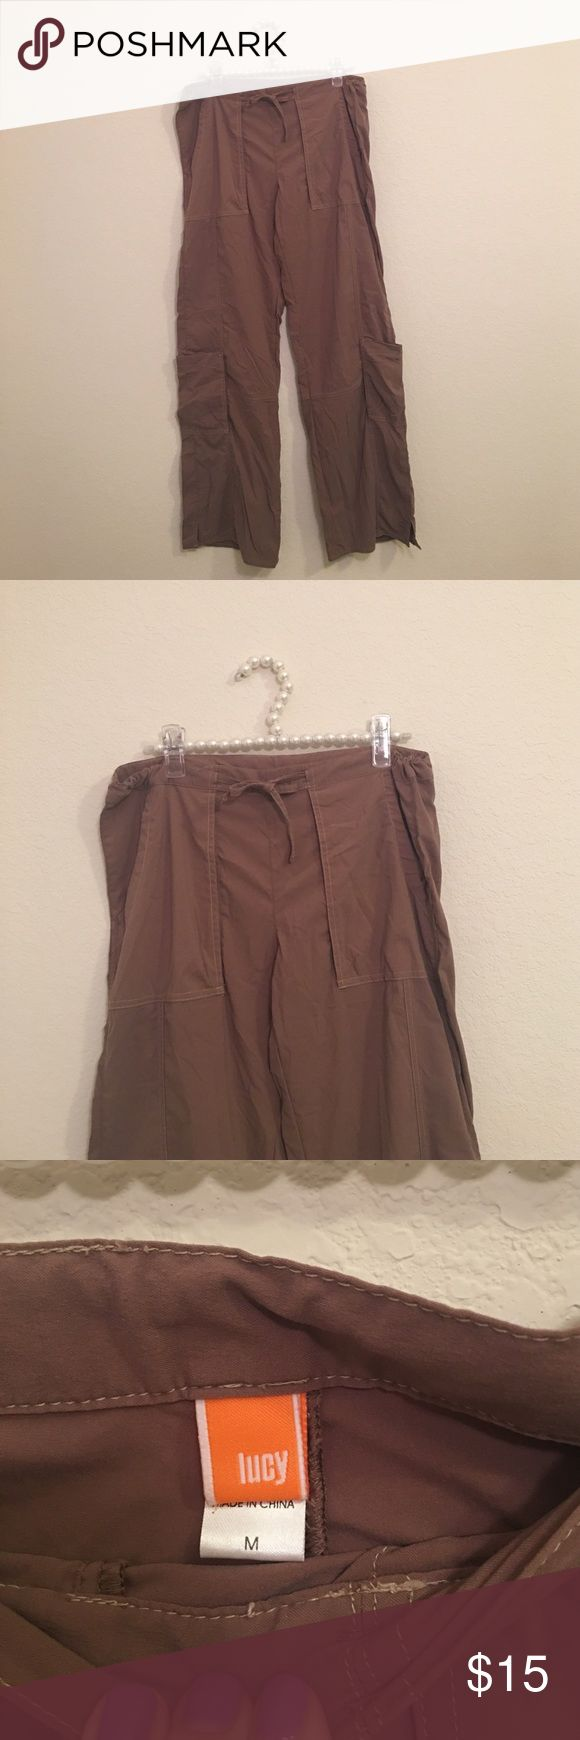 Women's Lucy Cargo Trouser Size Medium Lucy trousers! Great condition! Super comfy, draw string at waist, Cargo pockets on the side. Size Medium. Lucy Pants Trousers